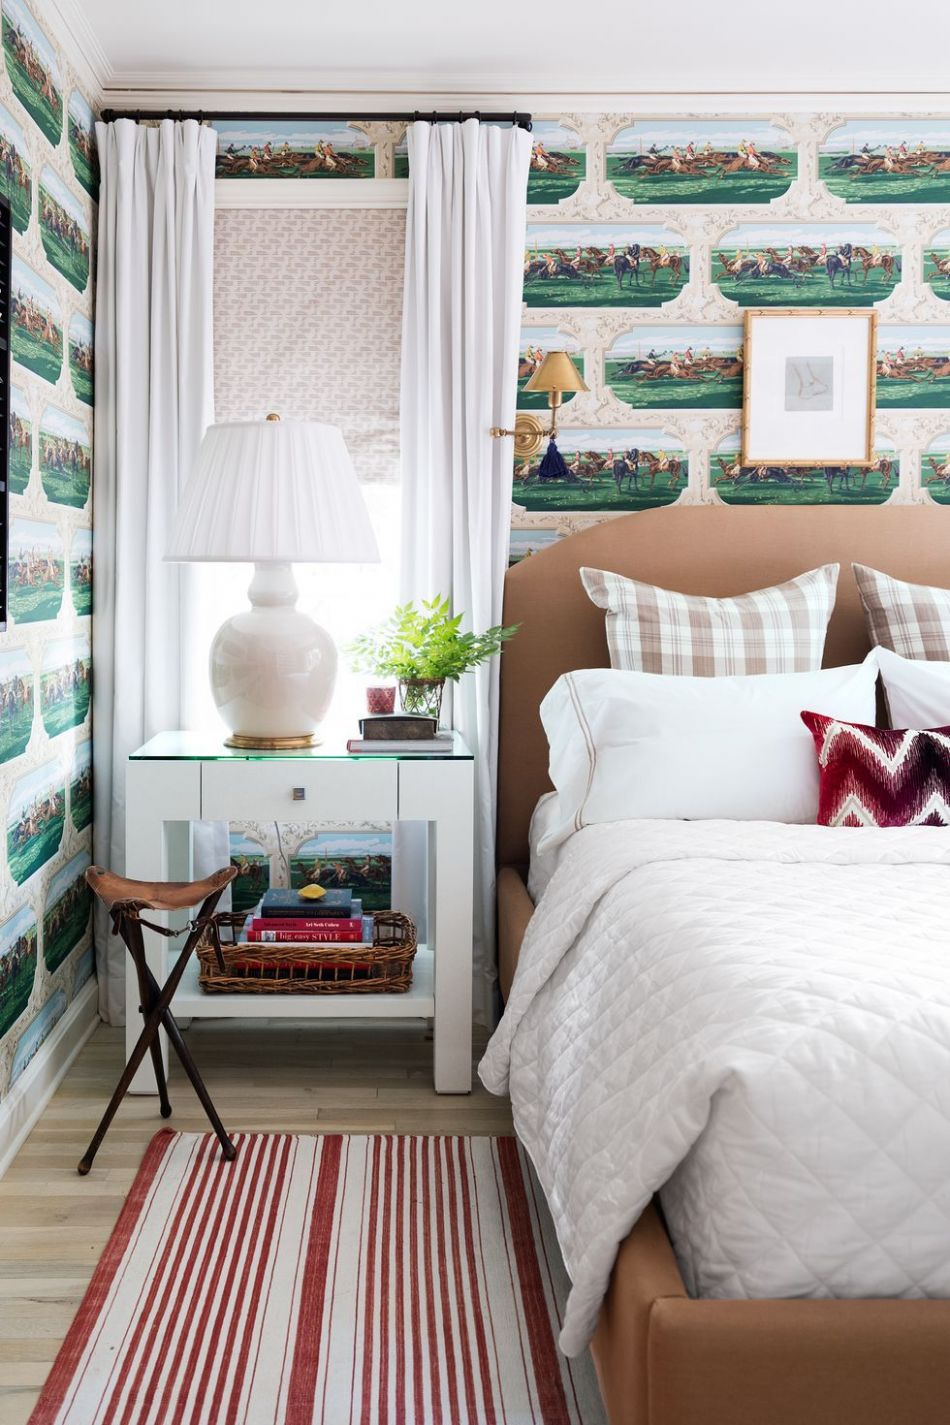 9 Small Bedroom Design Ideas - How to Decorate a Small Bedroom